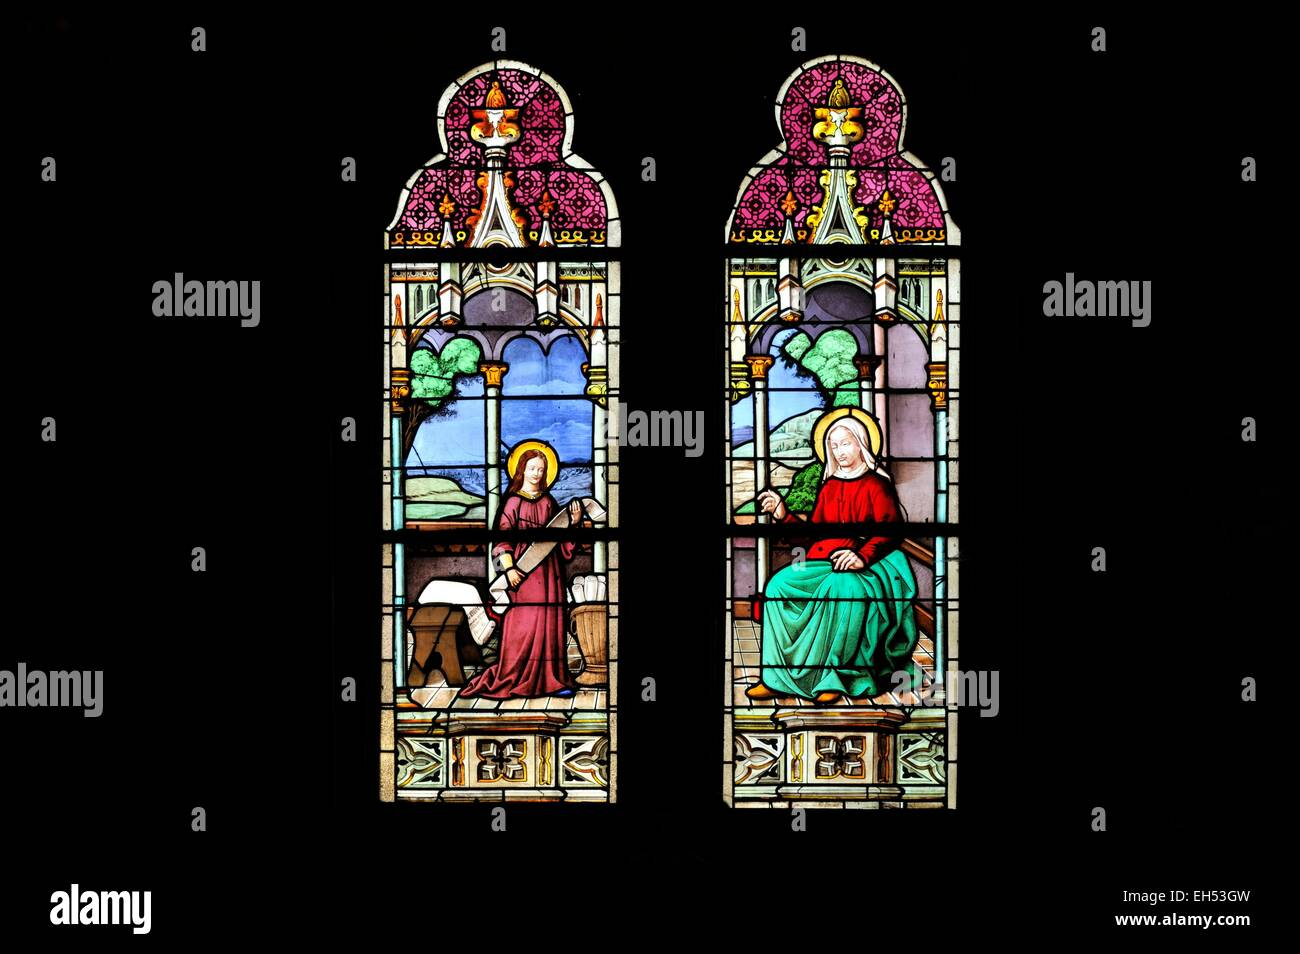 Two Stained Glass Windows Stockfotos & Two Stained Glass Windows ...